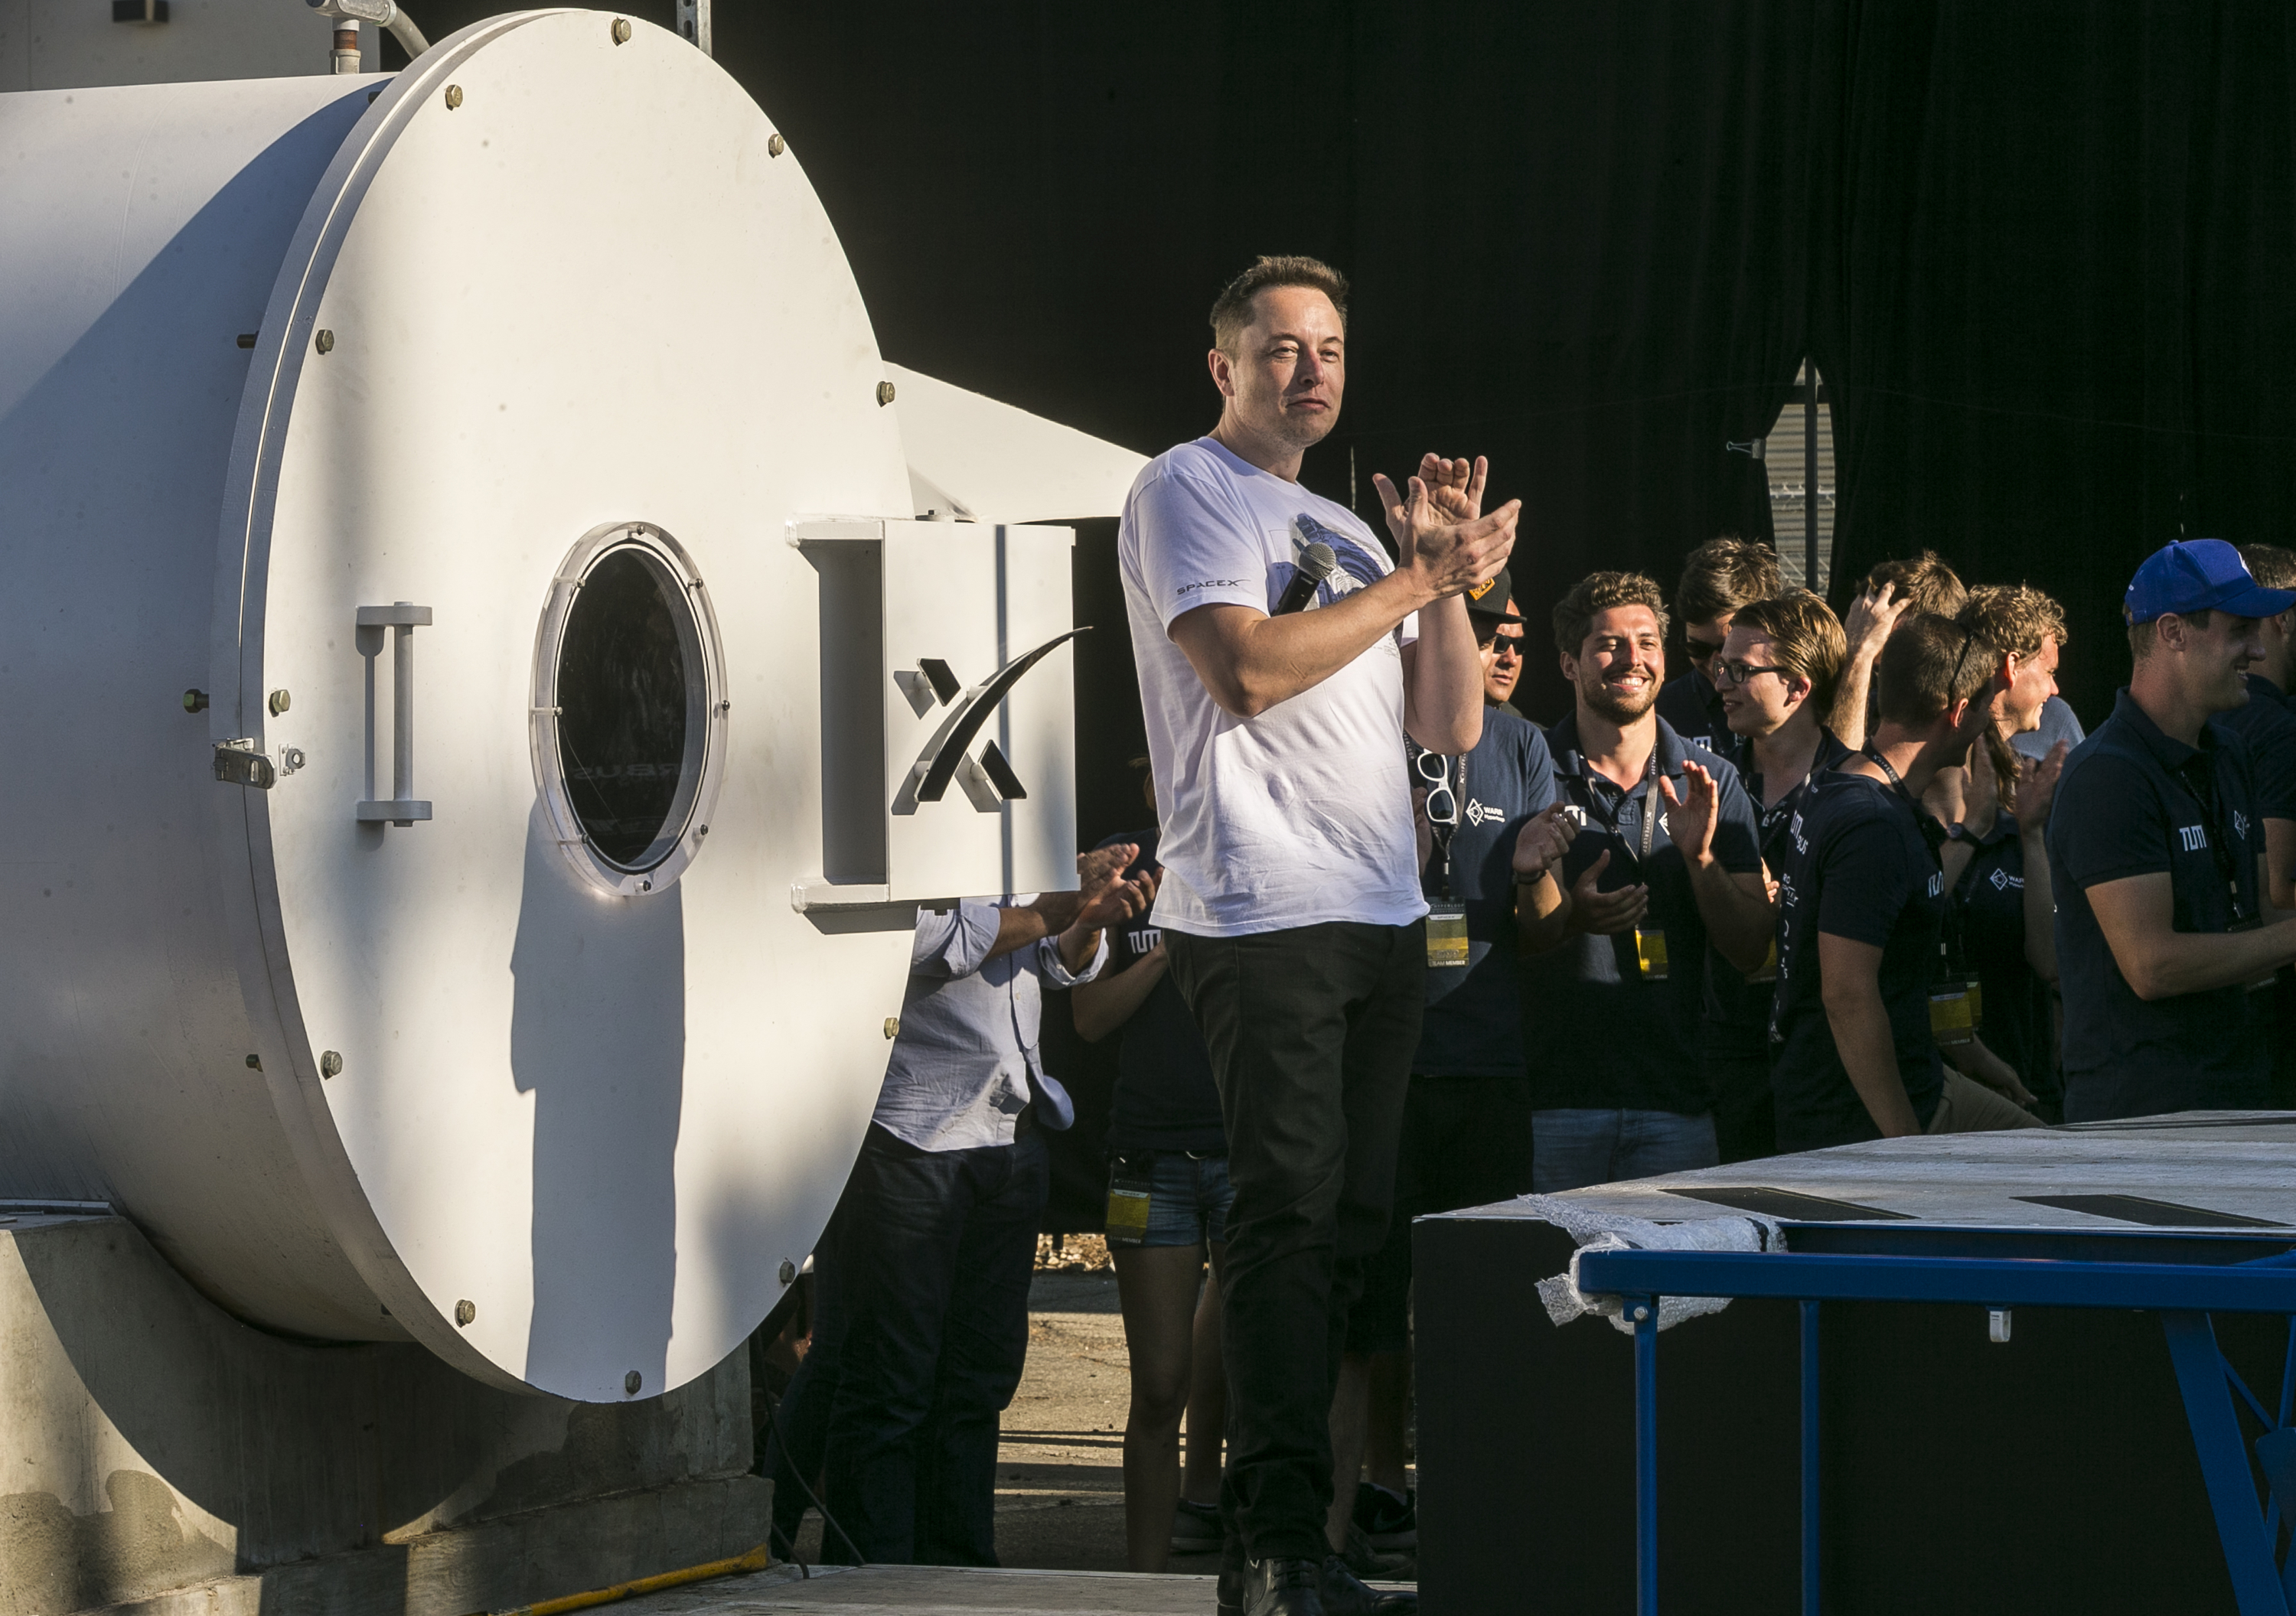 SpaceX CEO Elon Musk congratulates the winning team of the Hyperloop Pod Competition II at SpaceX's Hyperloop track in Hawthorne, Calif., Sunday, Aug. 27, 2017. The Hyperloop system built by SpaceX is approximately one mile in length with a six-foot outer diameter. The WARR team from Tech University Munich won the Hyperloop Pod Competition II with a peak speed of 324 kilometers per hour (201 mph). (AP Photo/Damian Dovarganes)